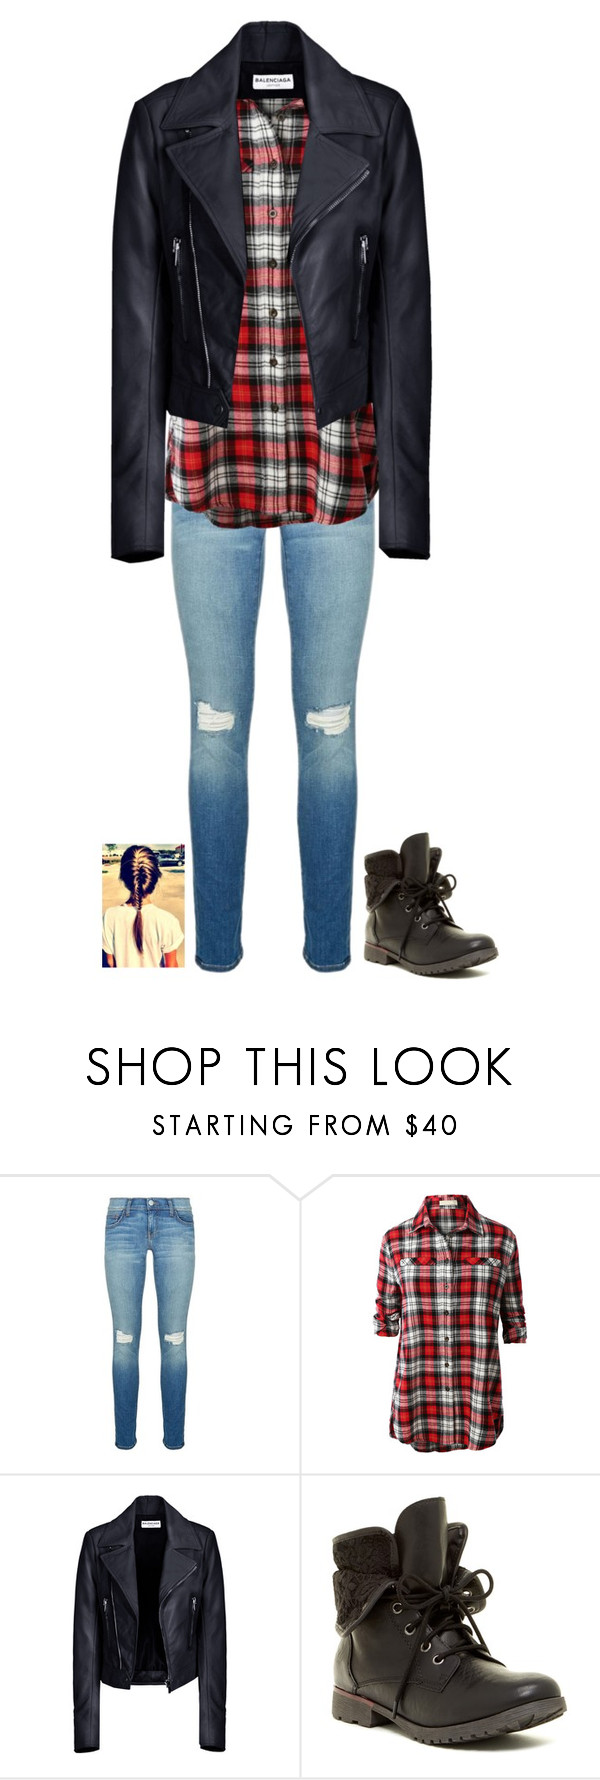 """""""Dress it up, or down"""" by neb1211 ❤ liked on Polyvore featuring Rebecca Minkoff, LE3NO, Balenciaga and Rock & Candy"""